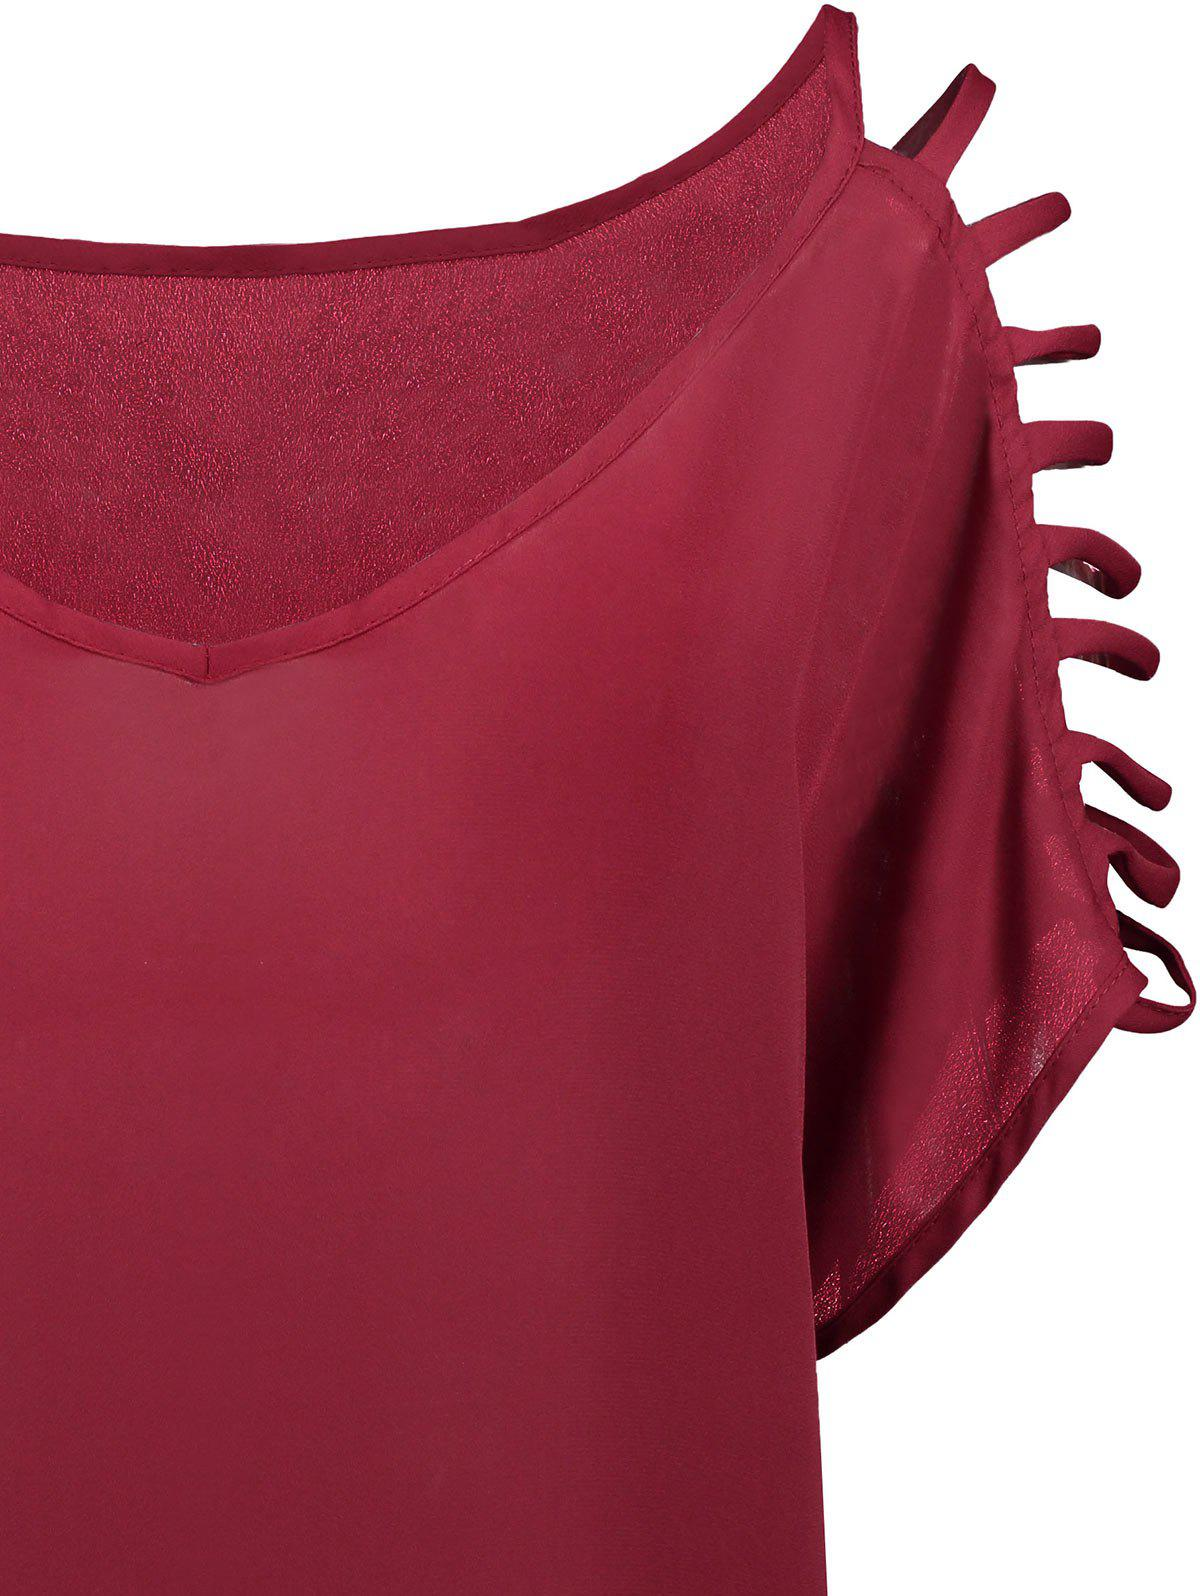 Short Sleeve Ladder Cutout Blouse - WINE RED XL